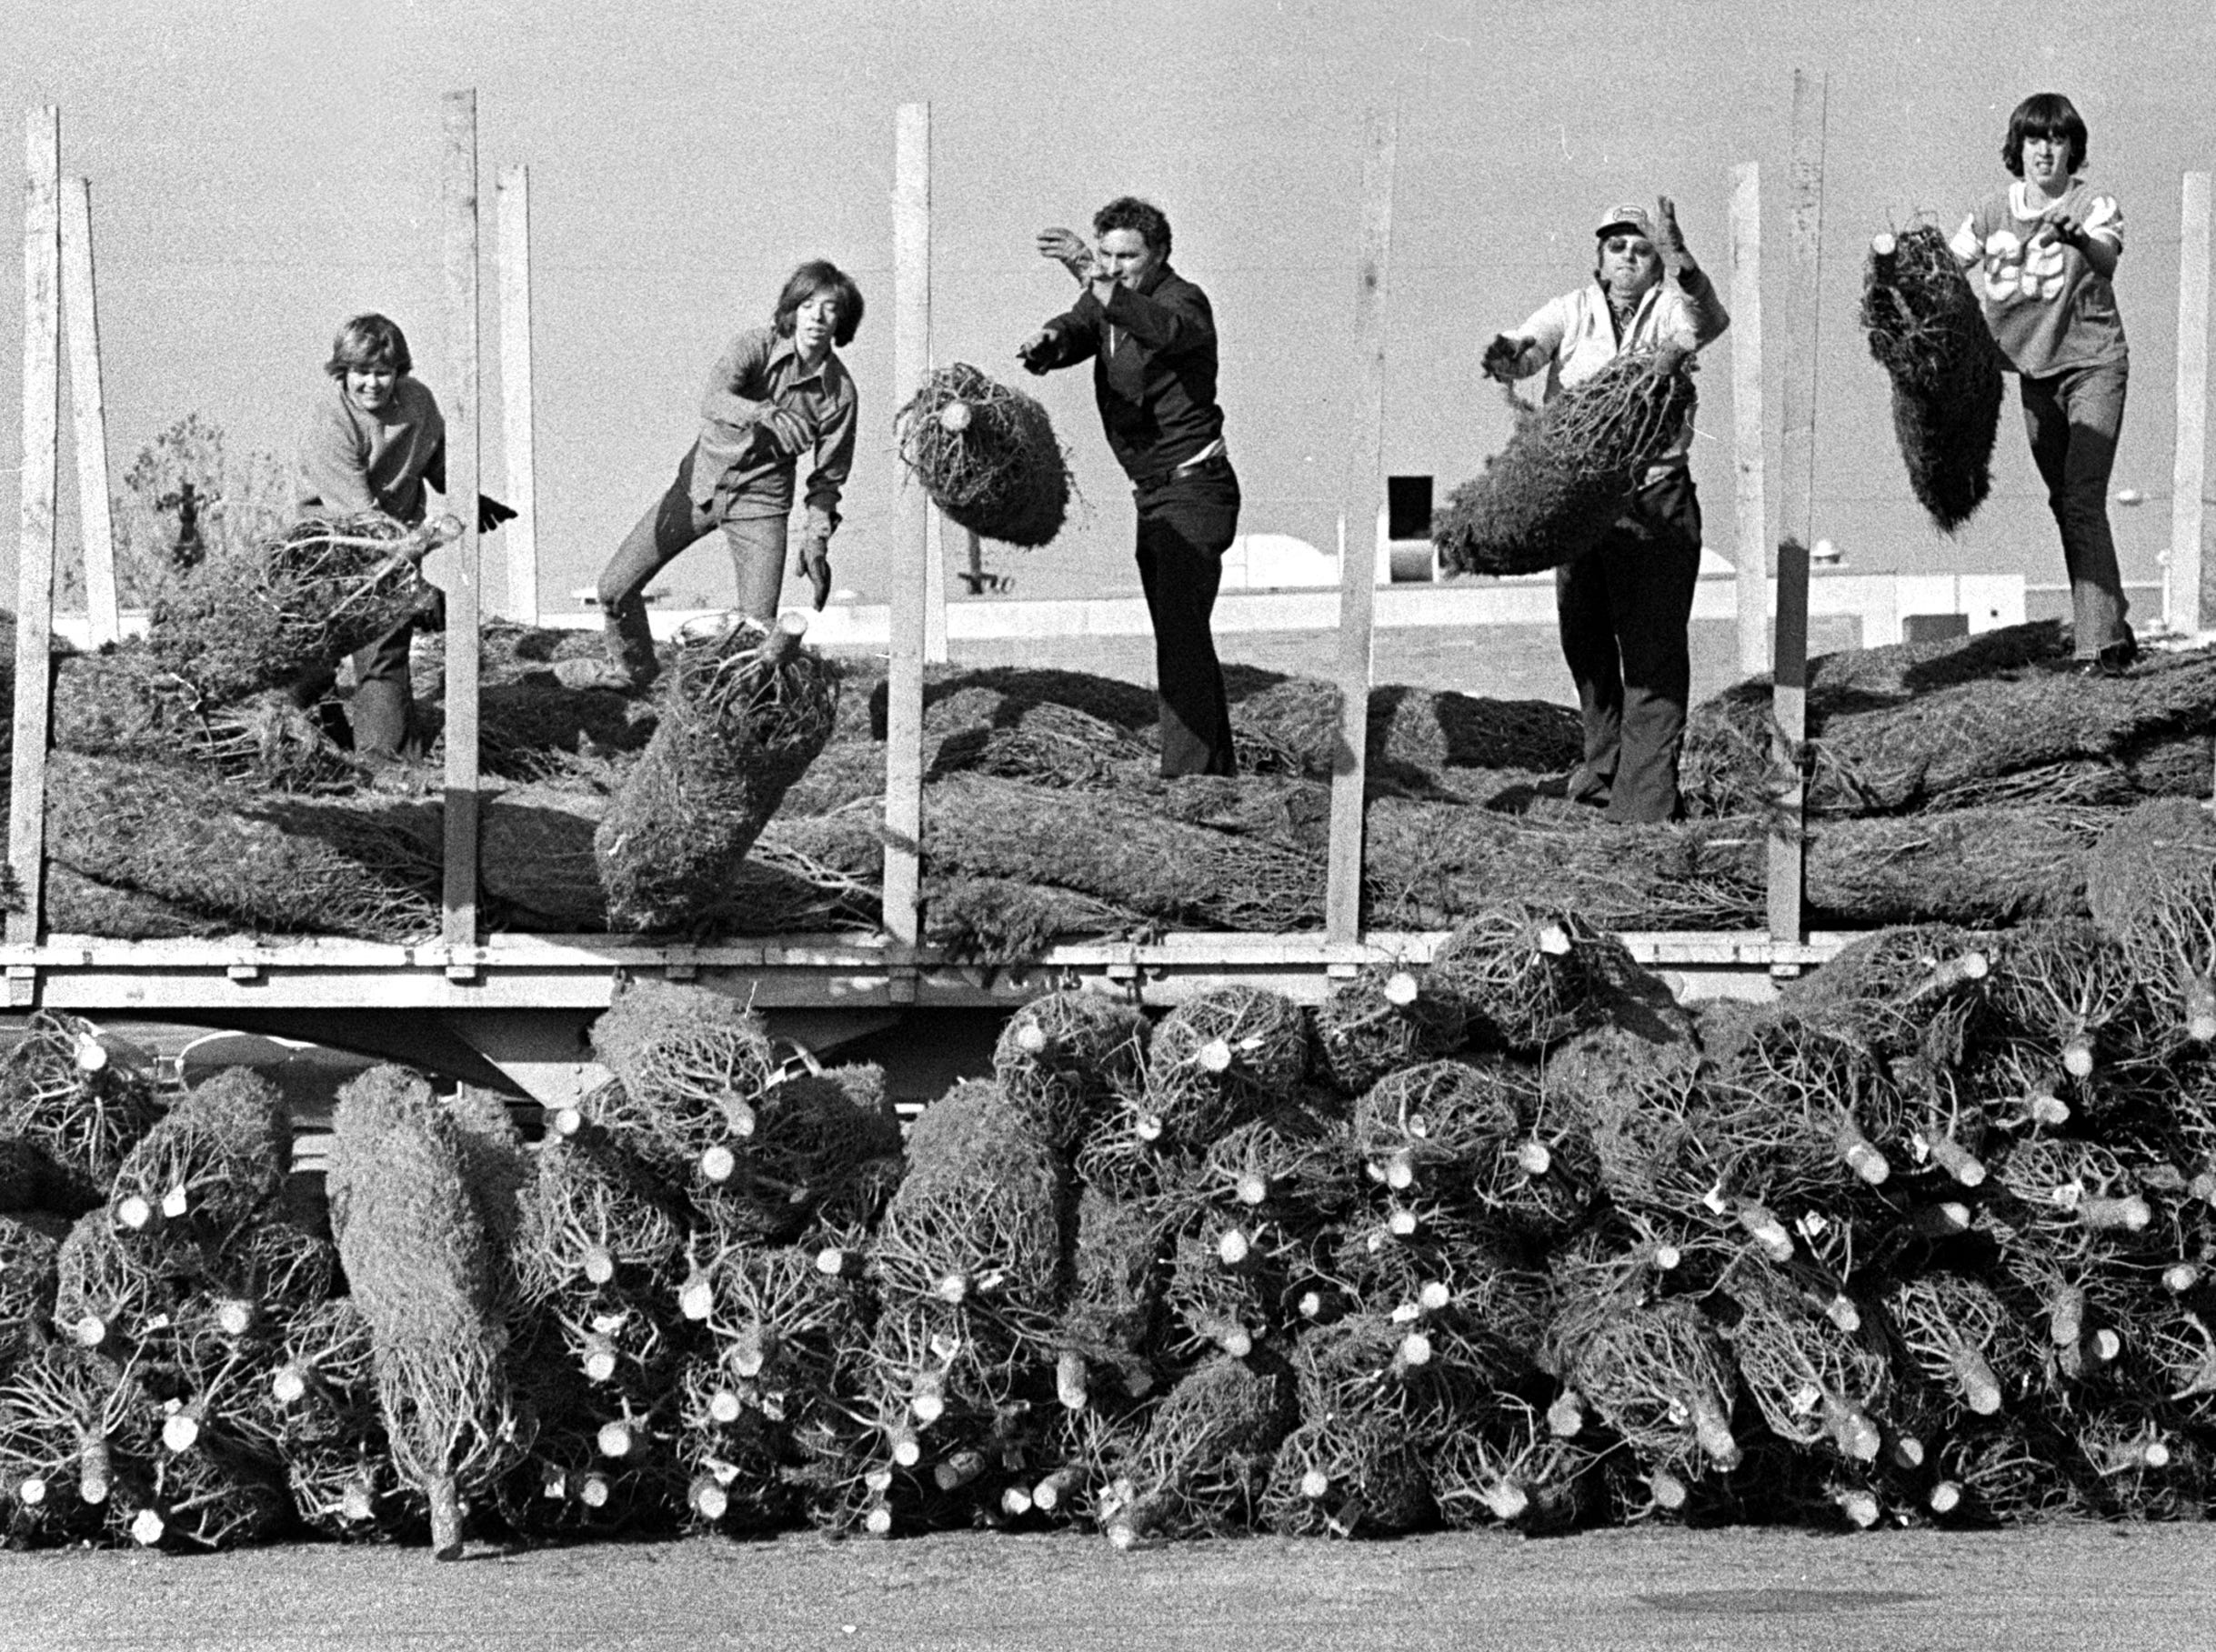 Whitehaven Optimists Club members (from left) Steve Poe, Bill Lamb, Virgil Inman, Art Smith and Steve Smith unload Christmas trees on Nov. 29, 1974. The club will sell the trees in Whitehaven Plaza.